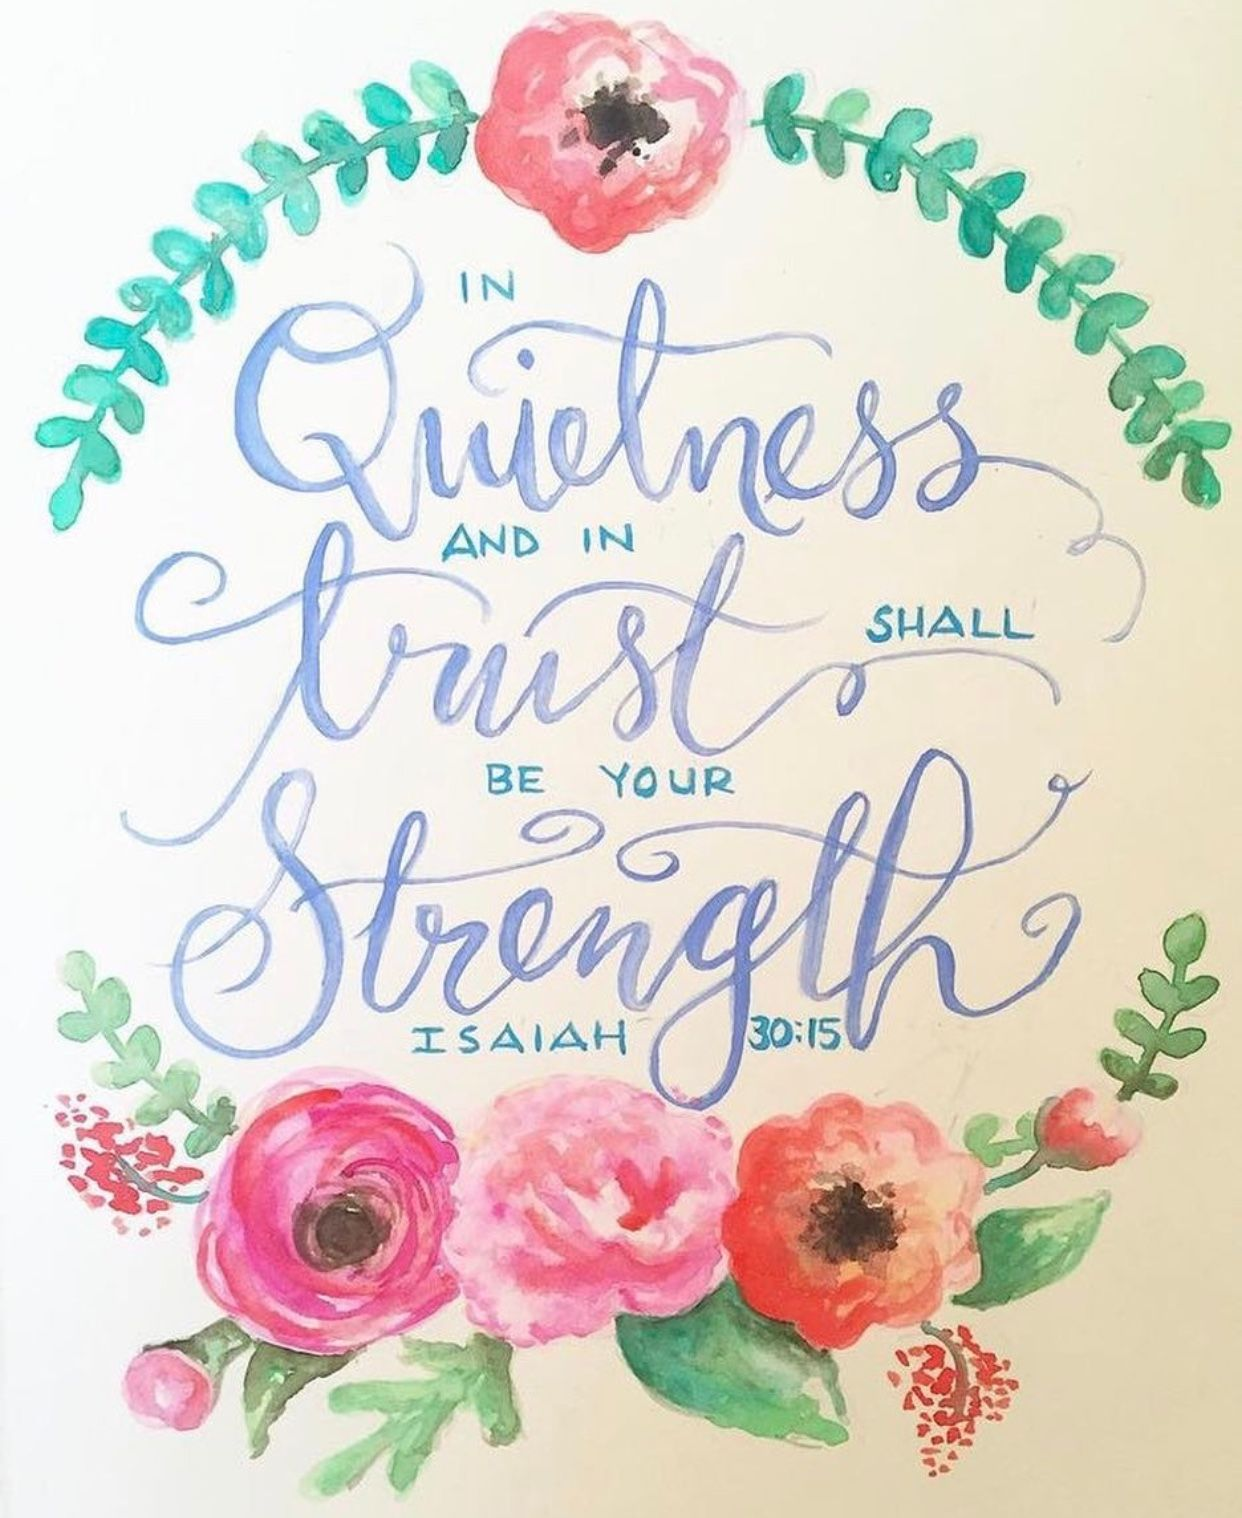 Pin by Amber Casey on Faith: Bible Verses & Spiritual Growth